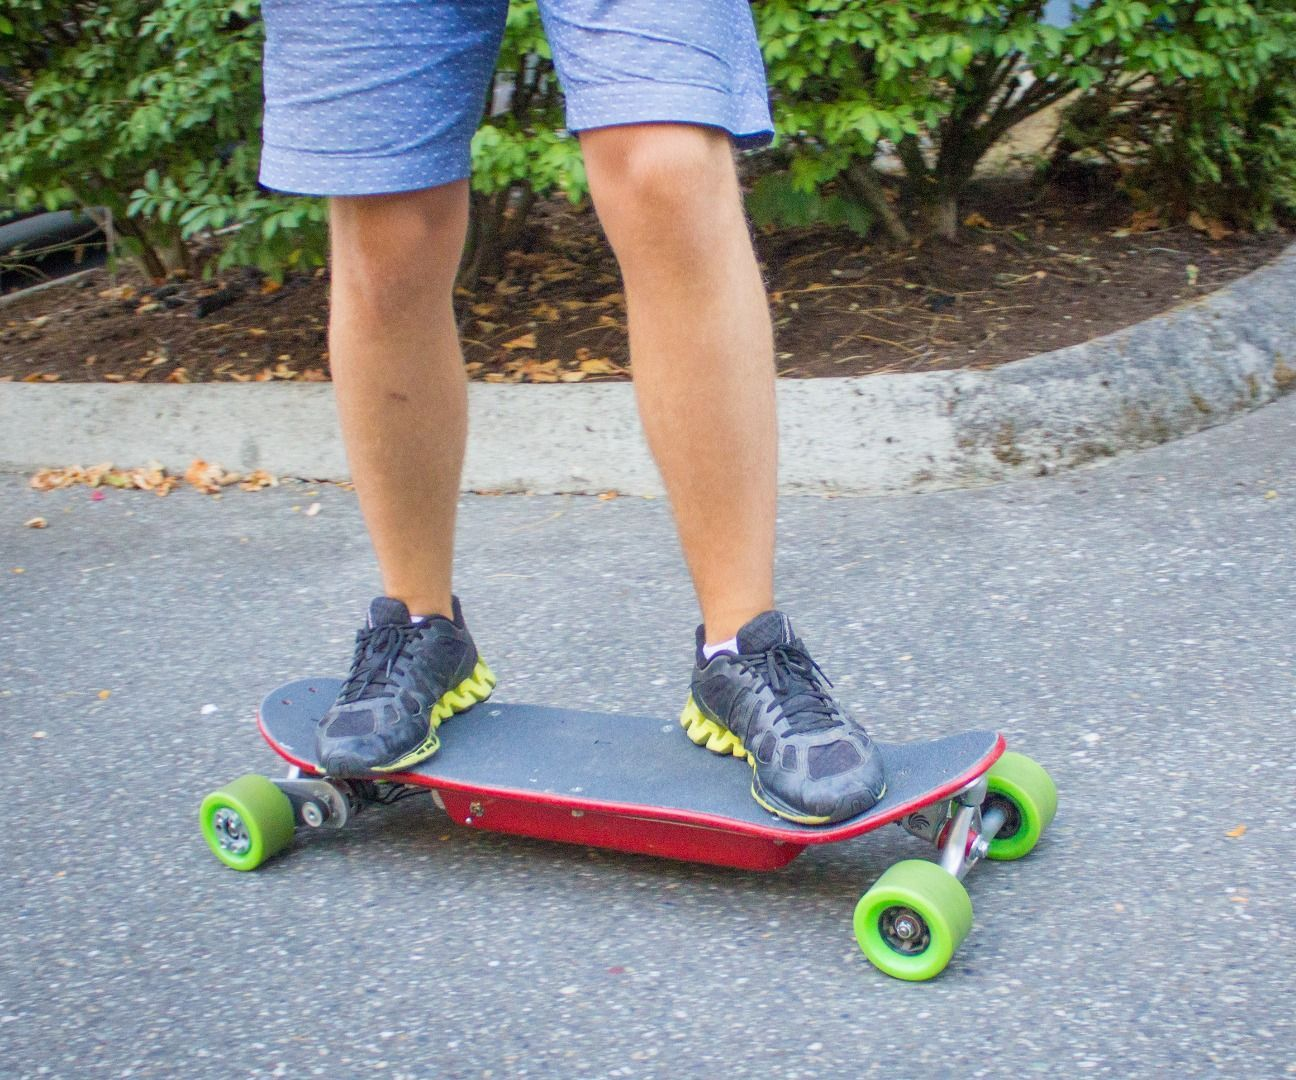 Electric Skateboard v2.0: Smartphone Controlled